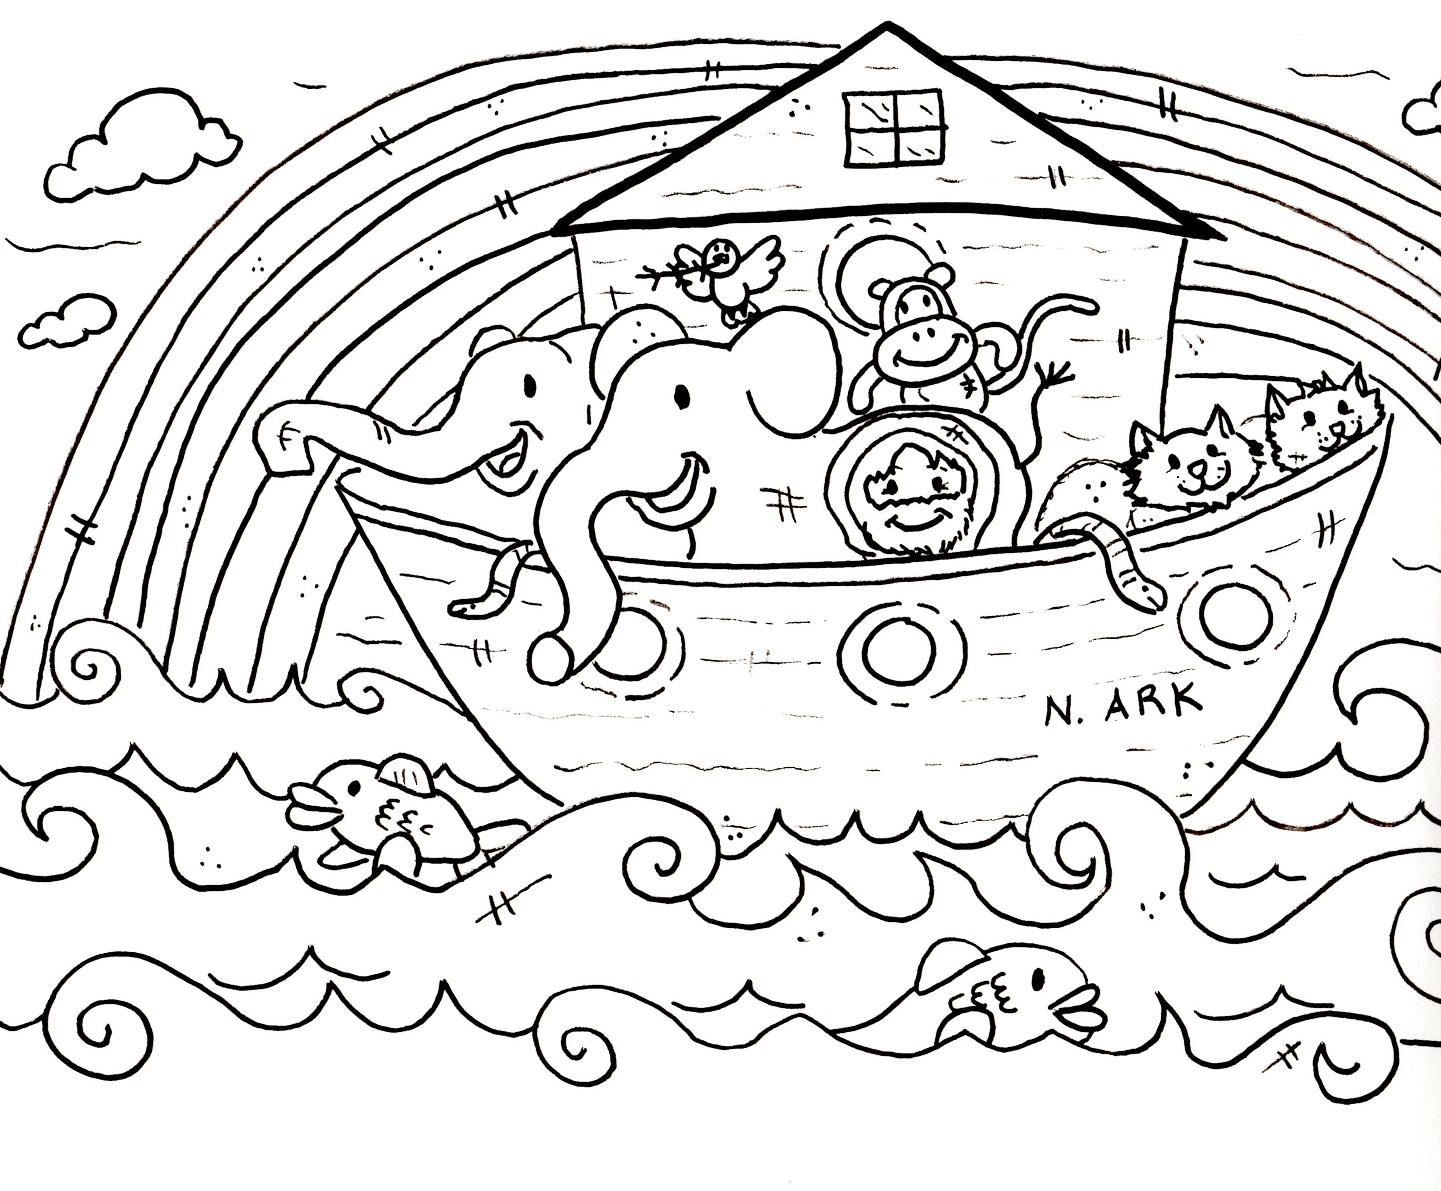 7 continents coloring page photo - 1